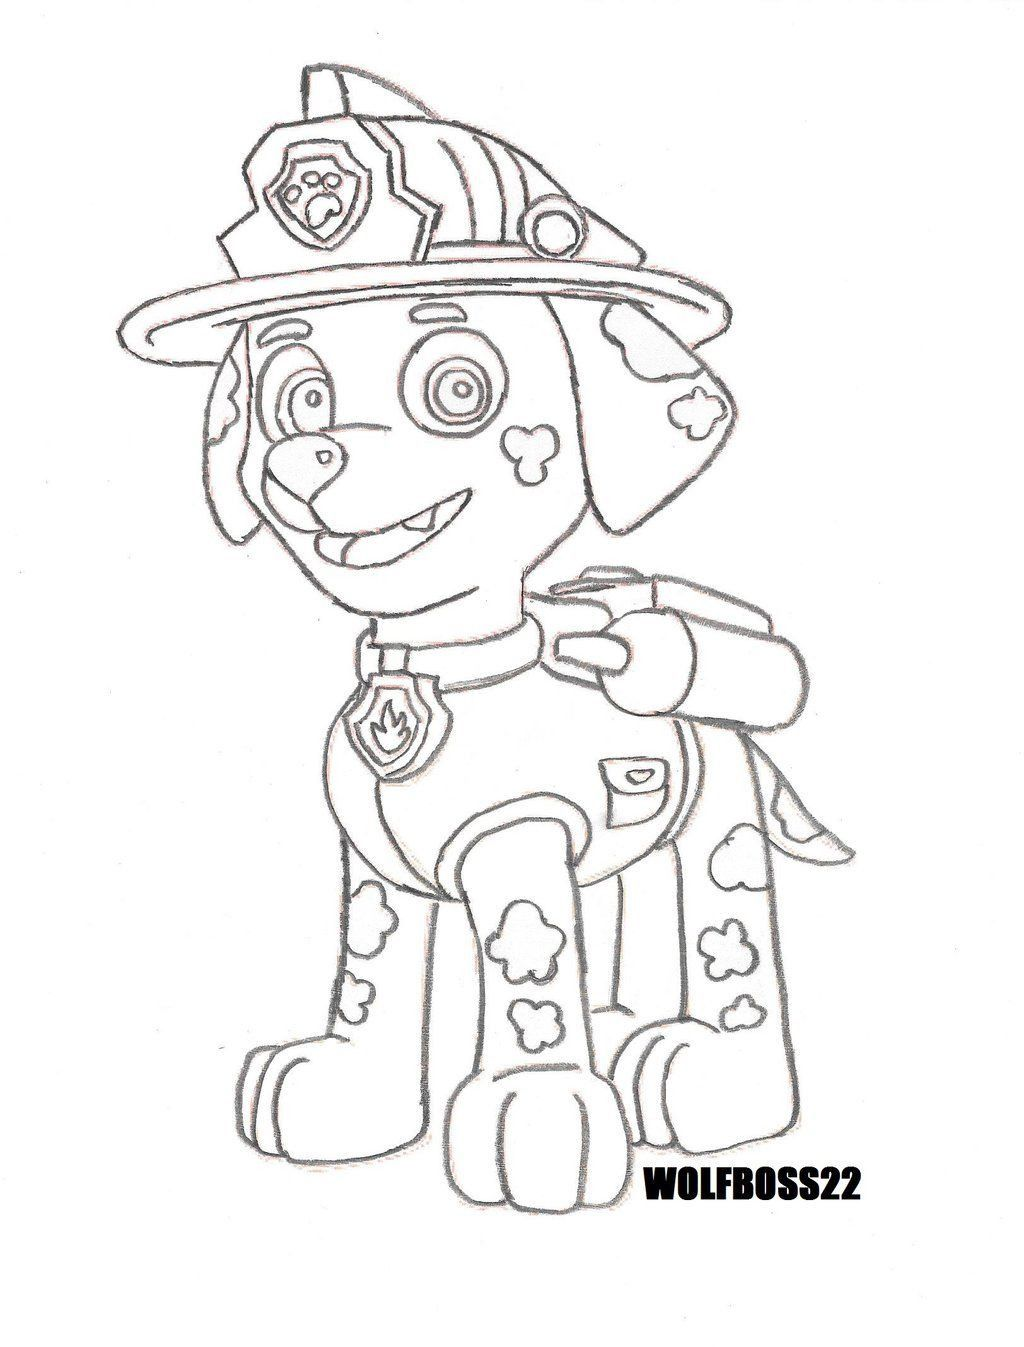 Paw Patrol Fire Truck Coloring Page Youngandtae Com Paw Patrol Coloring Pages Witch Coloring Pages Truck Coloring Pages